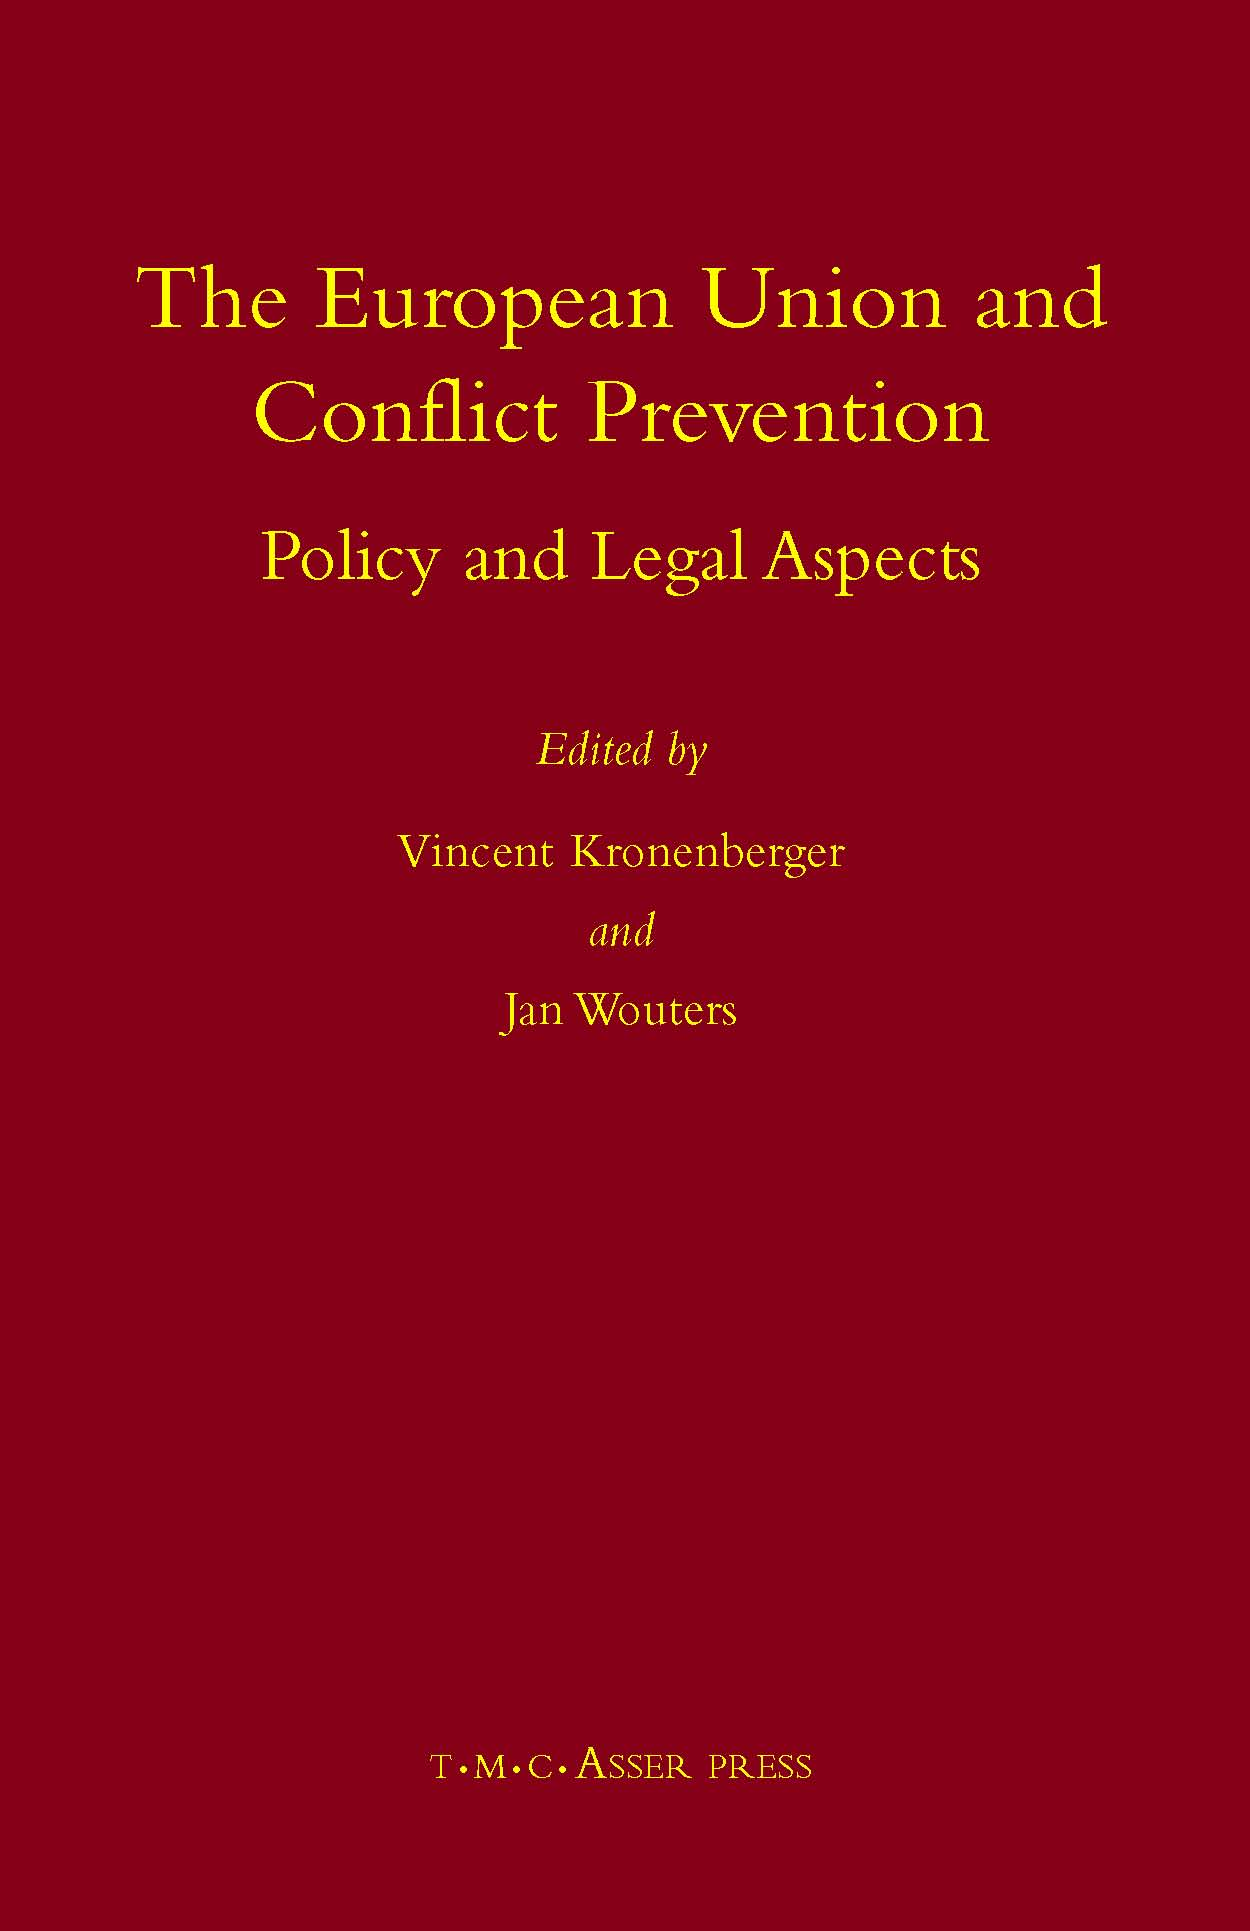 The European Union and Conflict Prevention - Policy and Legal Aspects